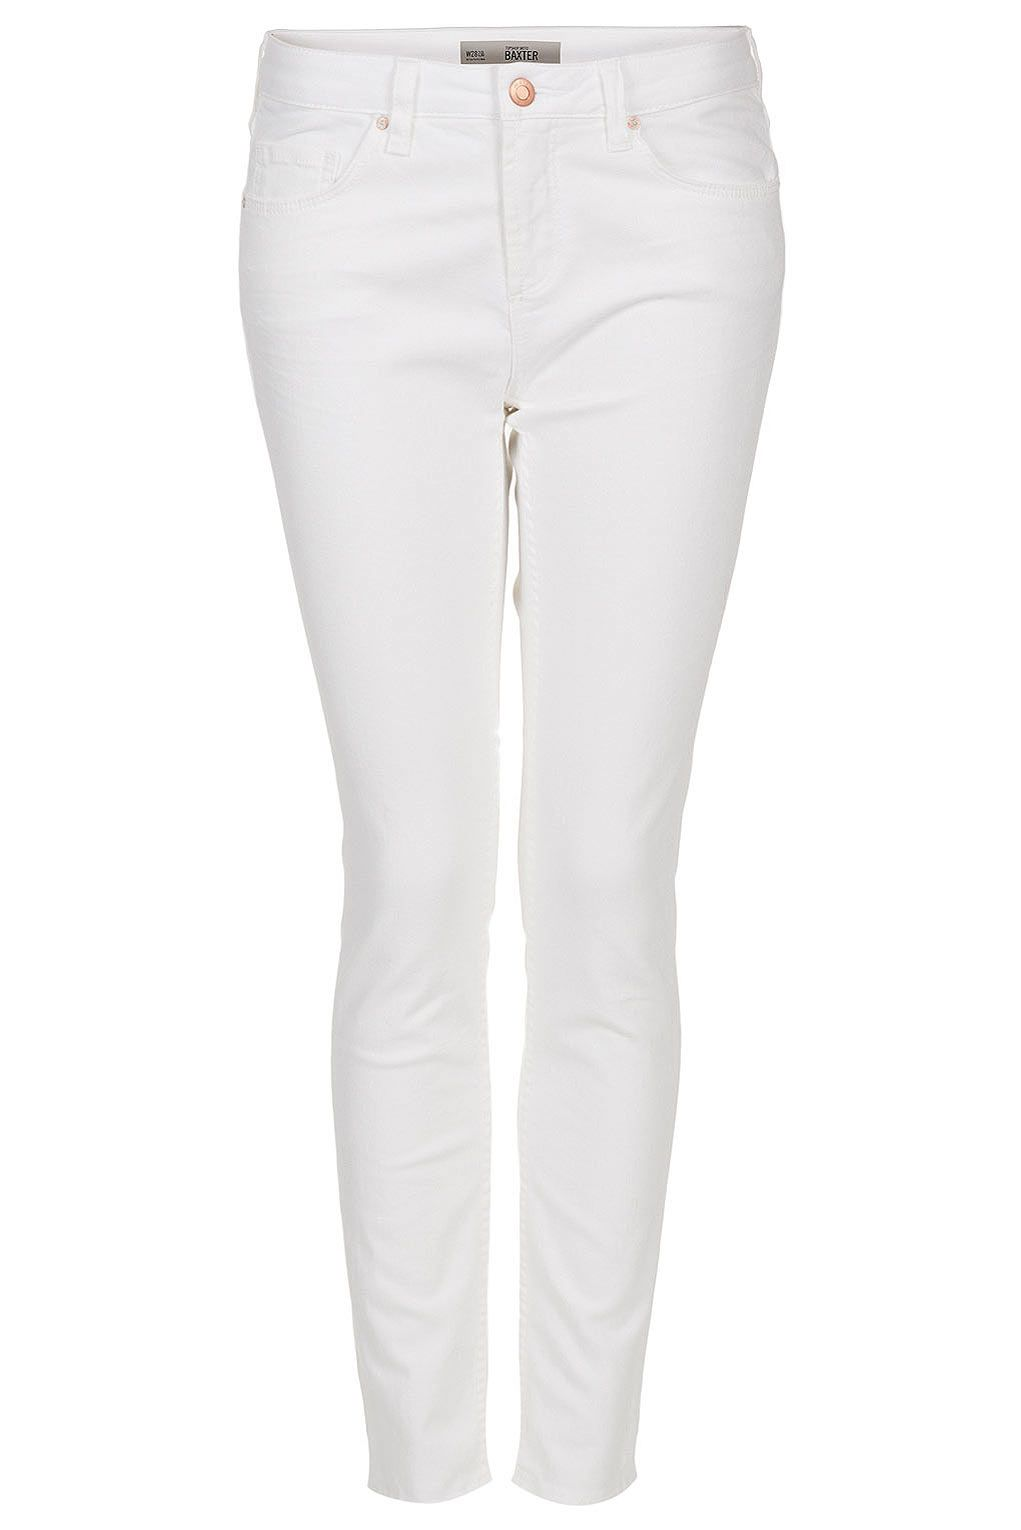 MOTO White Baxter Skinny Jeans Weiße Outfits, Coole Outfits, Weiße Skinny- jeans, dd448945c7